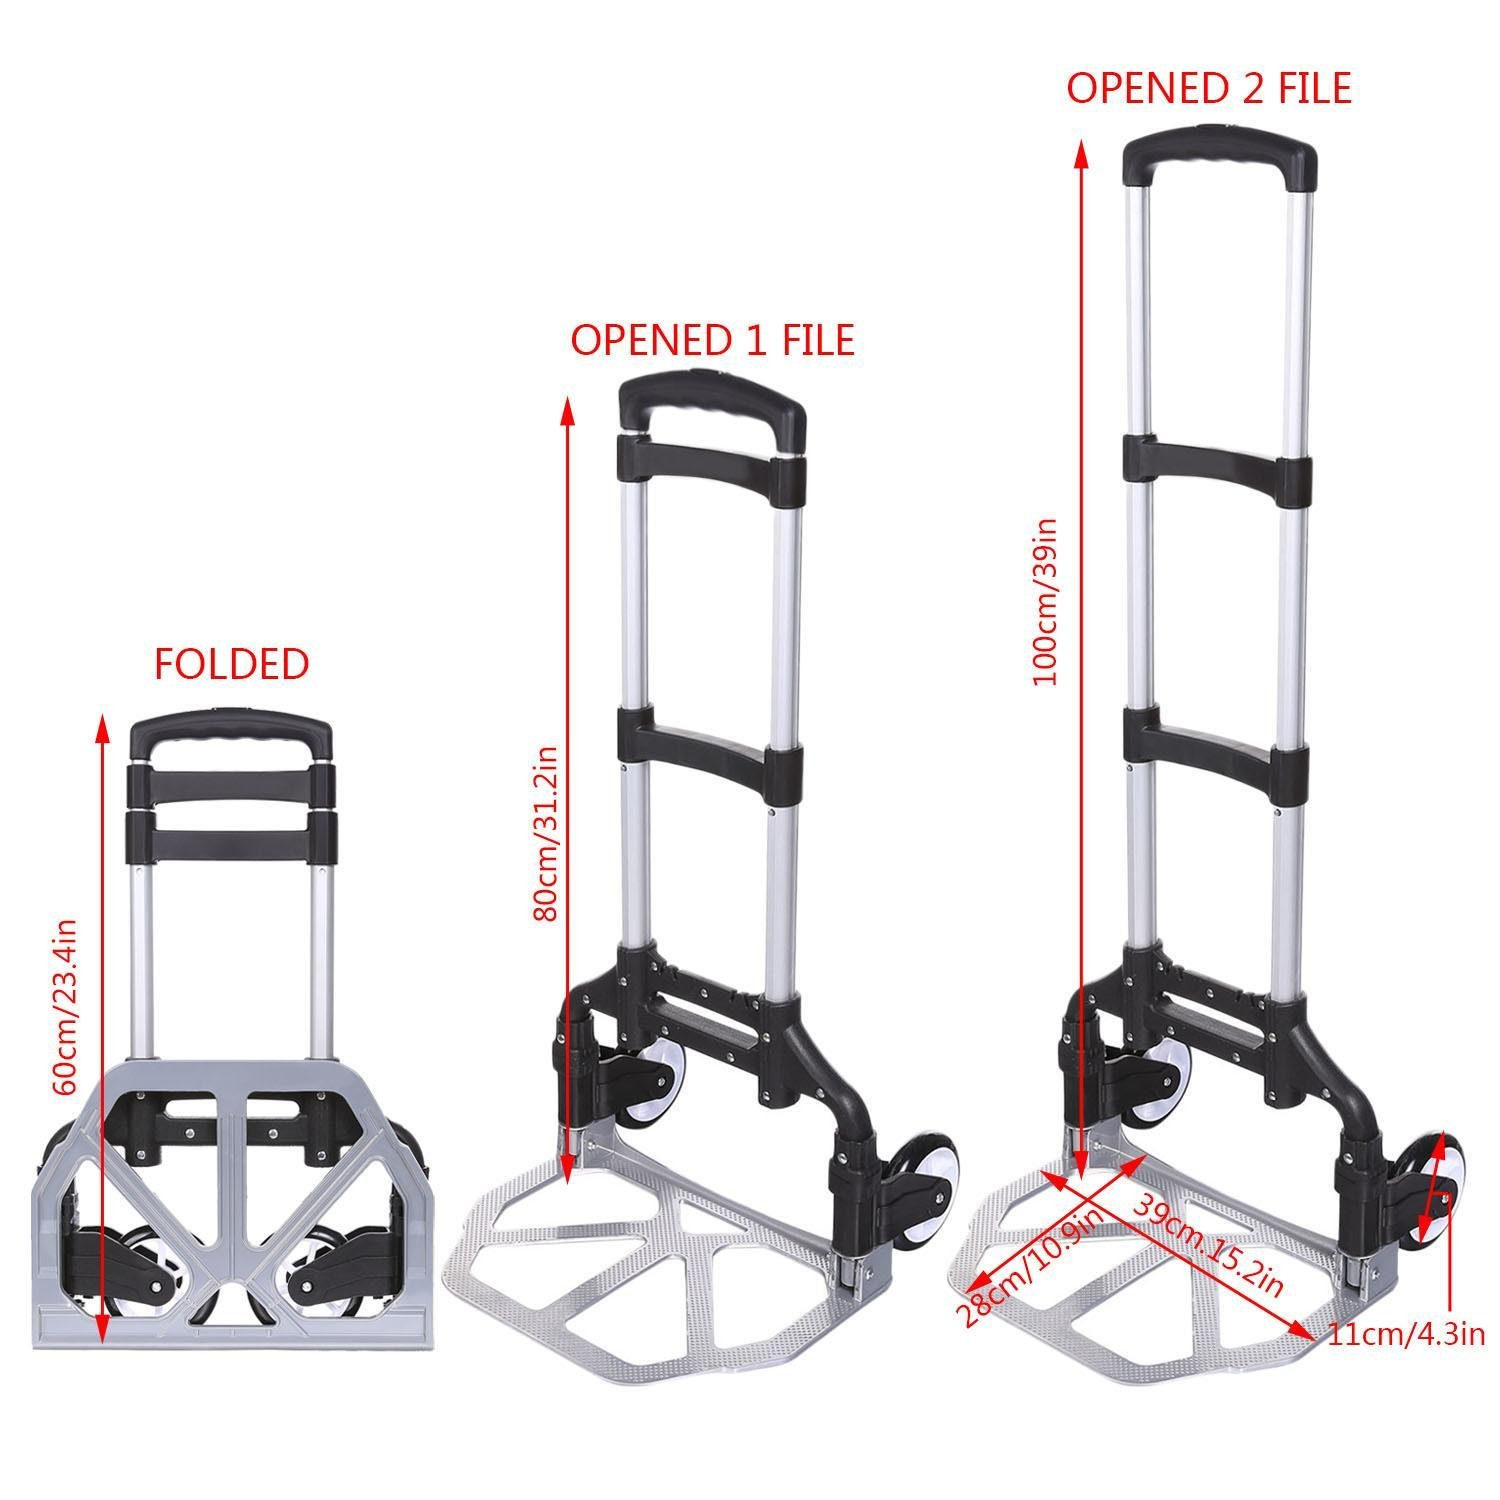 (US Stock) Keland Foldable Lightweight Hand Truck, Portable Aluminum Small Hand Trucks,150lbs Capacity Mini Hand Truck with Arm Handle for Industrial/Travel/Shopping by Keland (Image #7)